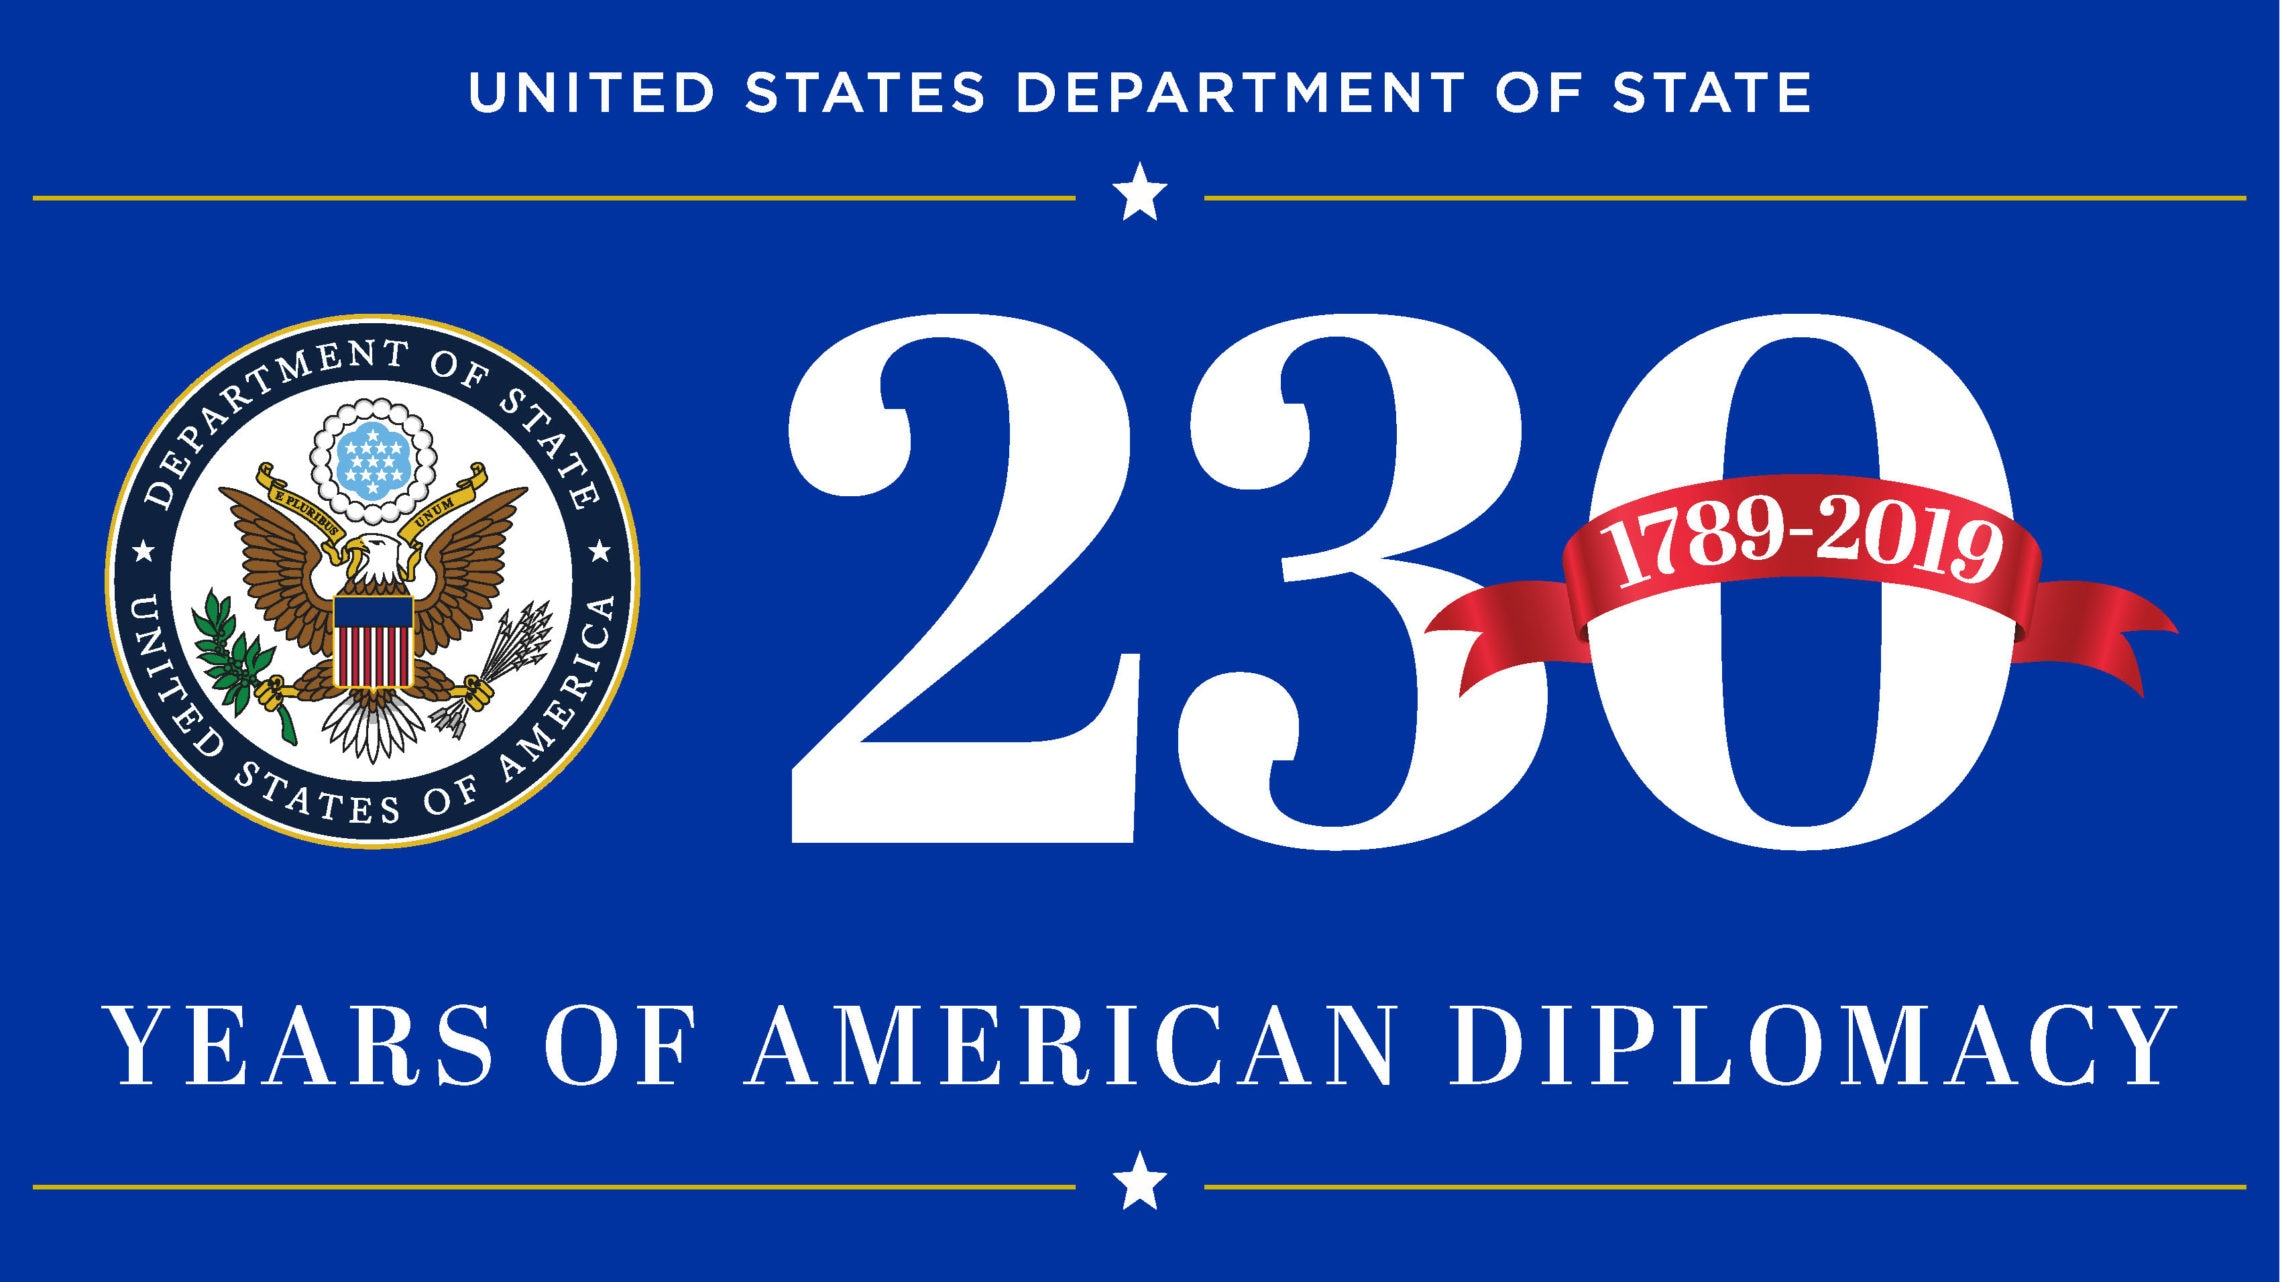 United States Department of State, 230 Years of American Diplomacy, 1789-2019